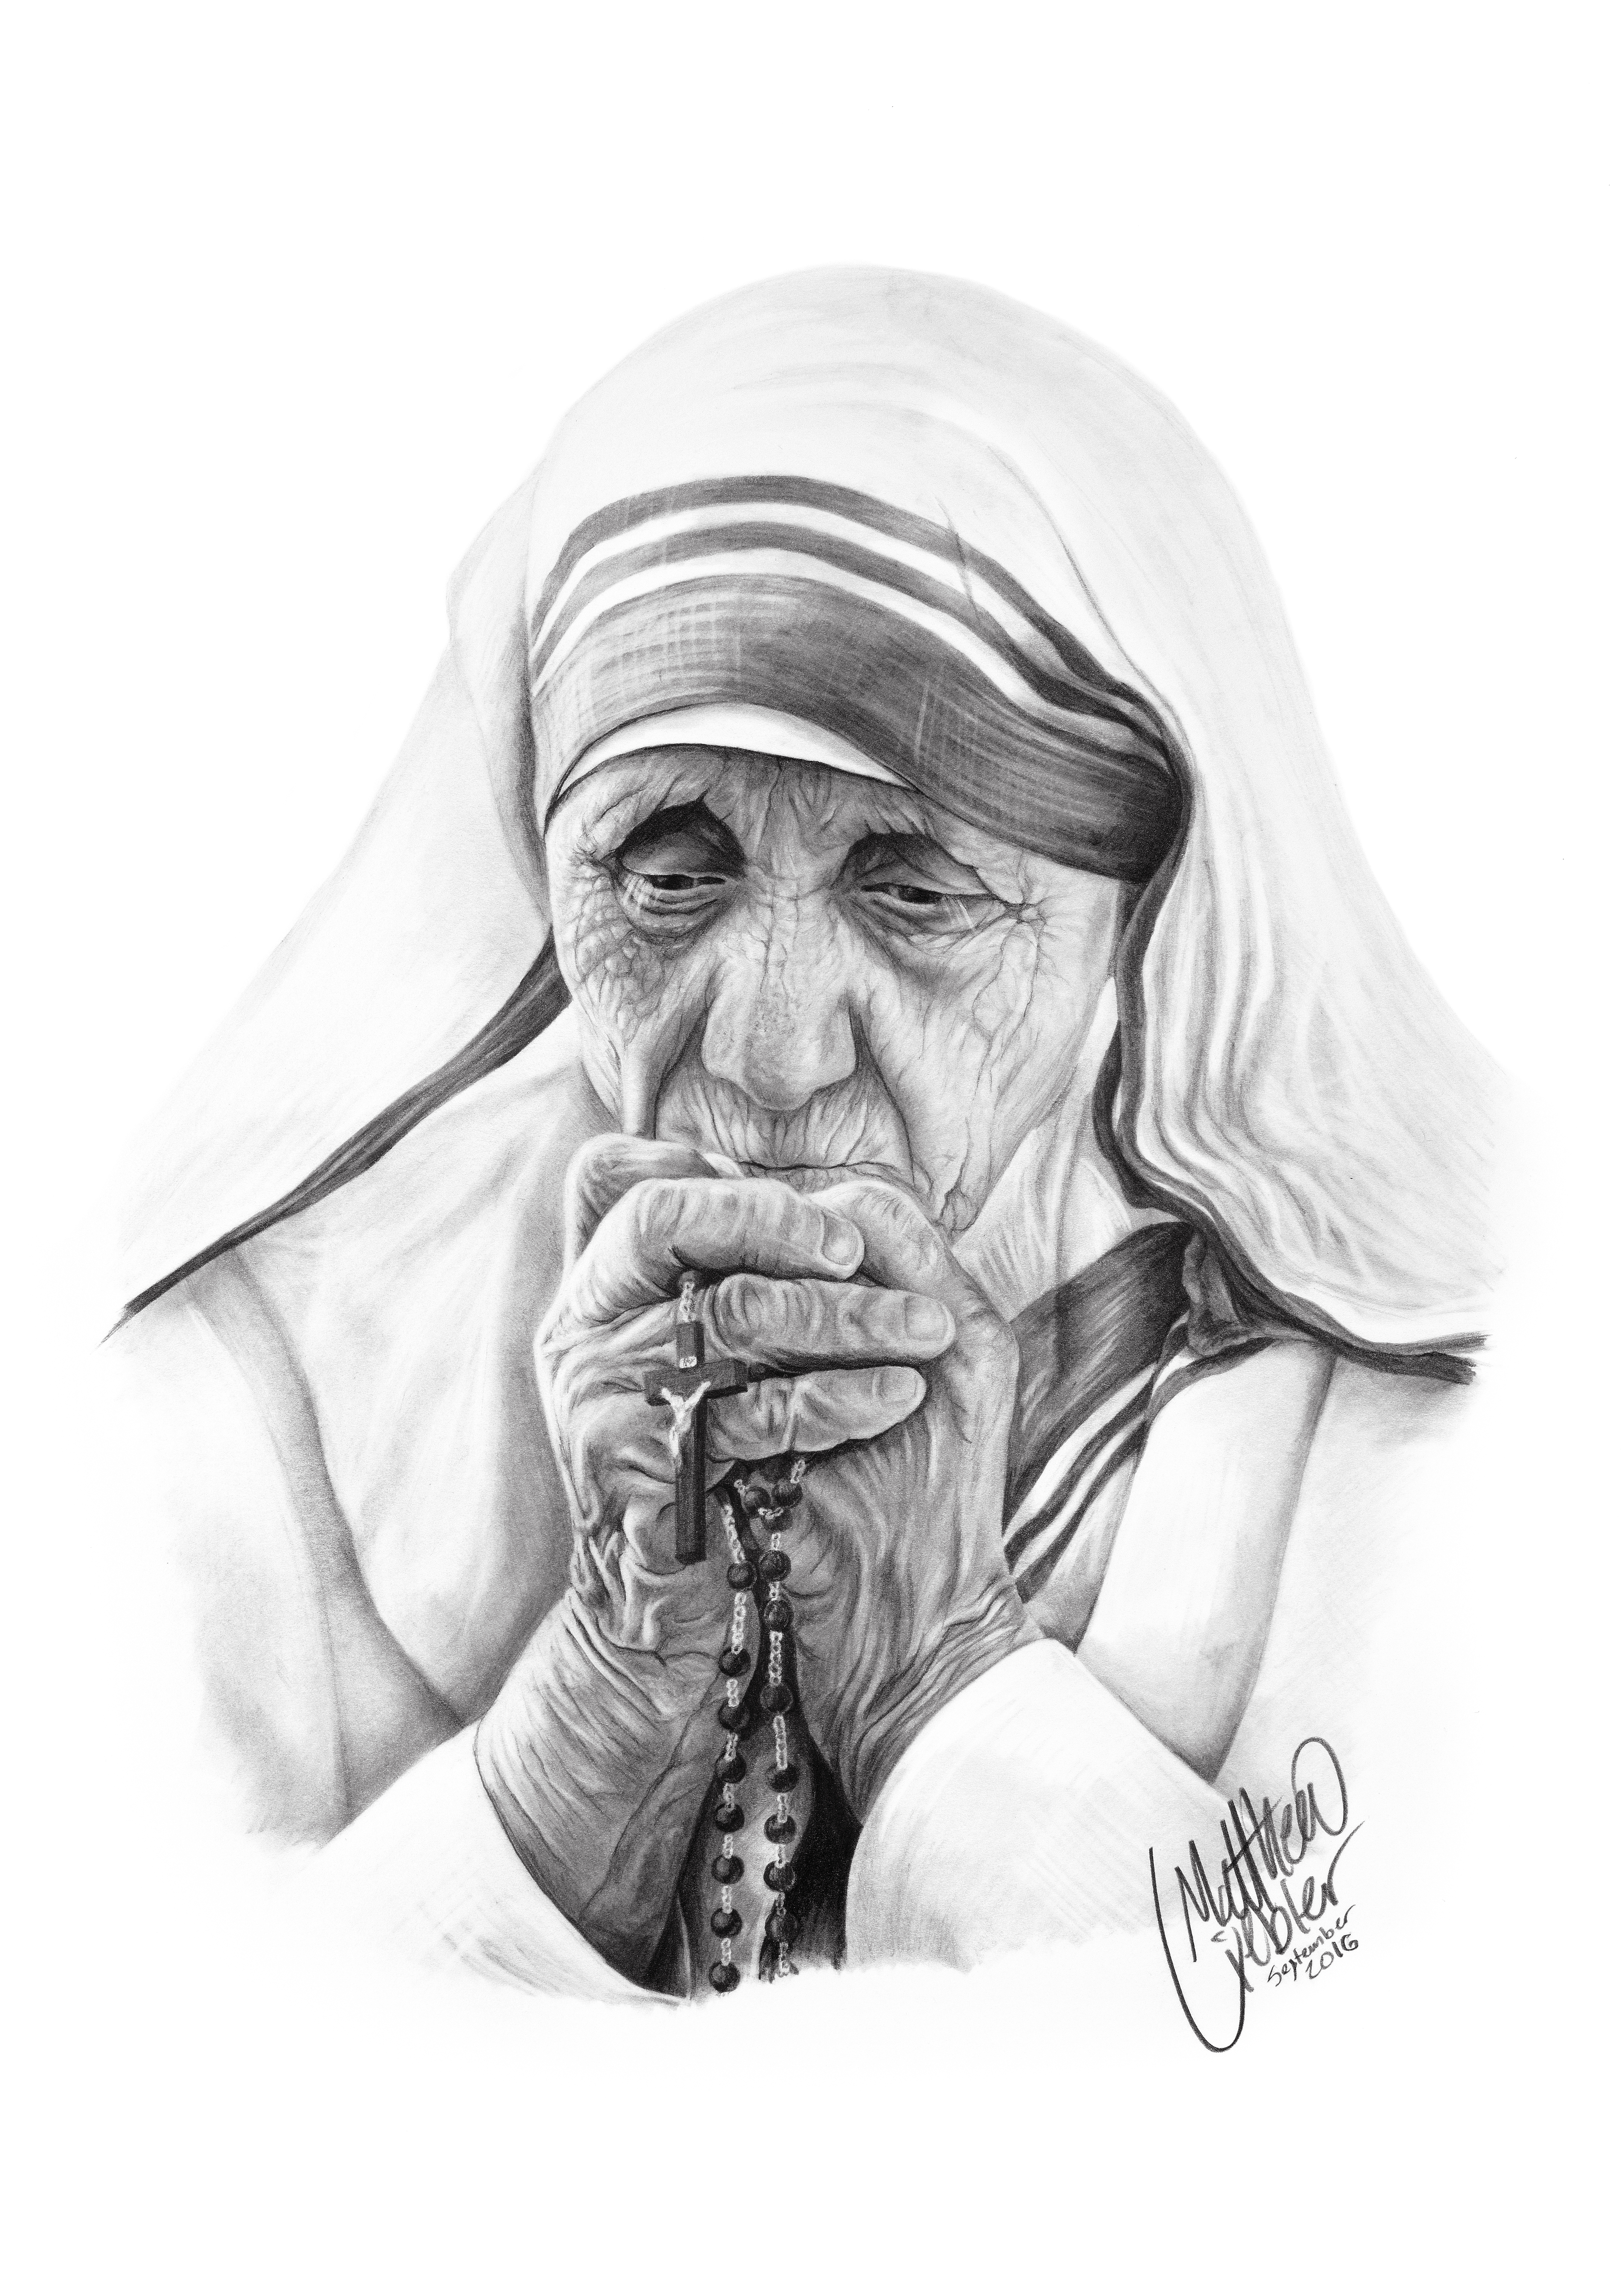 Drawing of a Nun holding a Rosary.